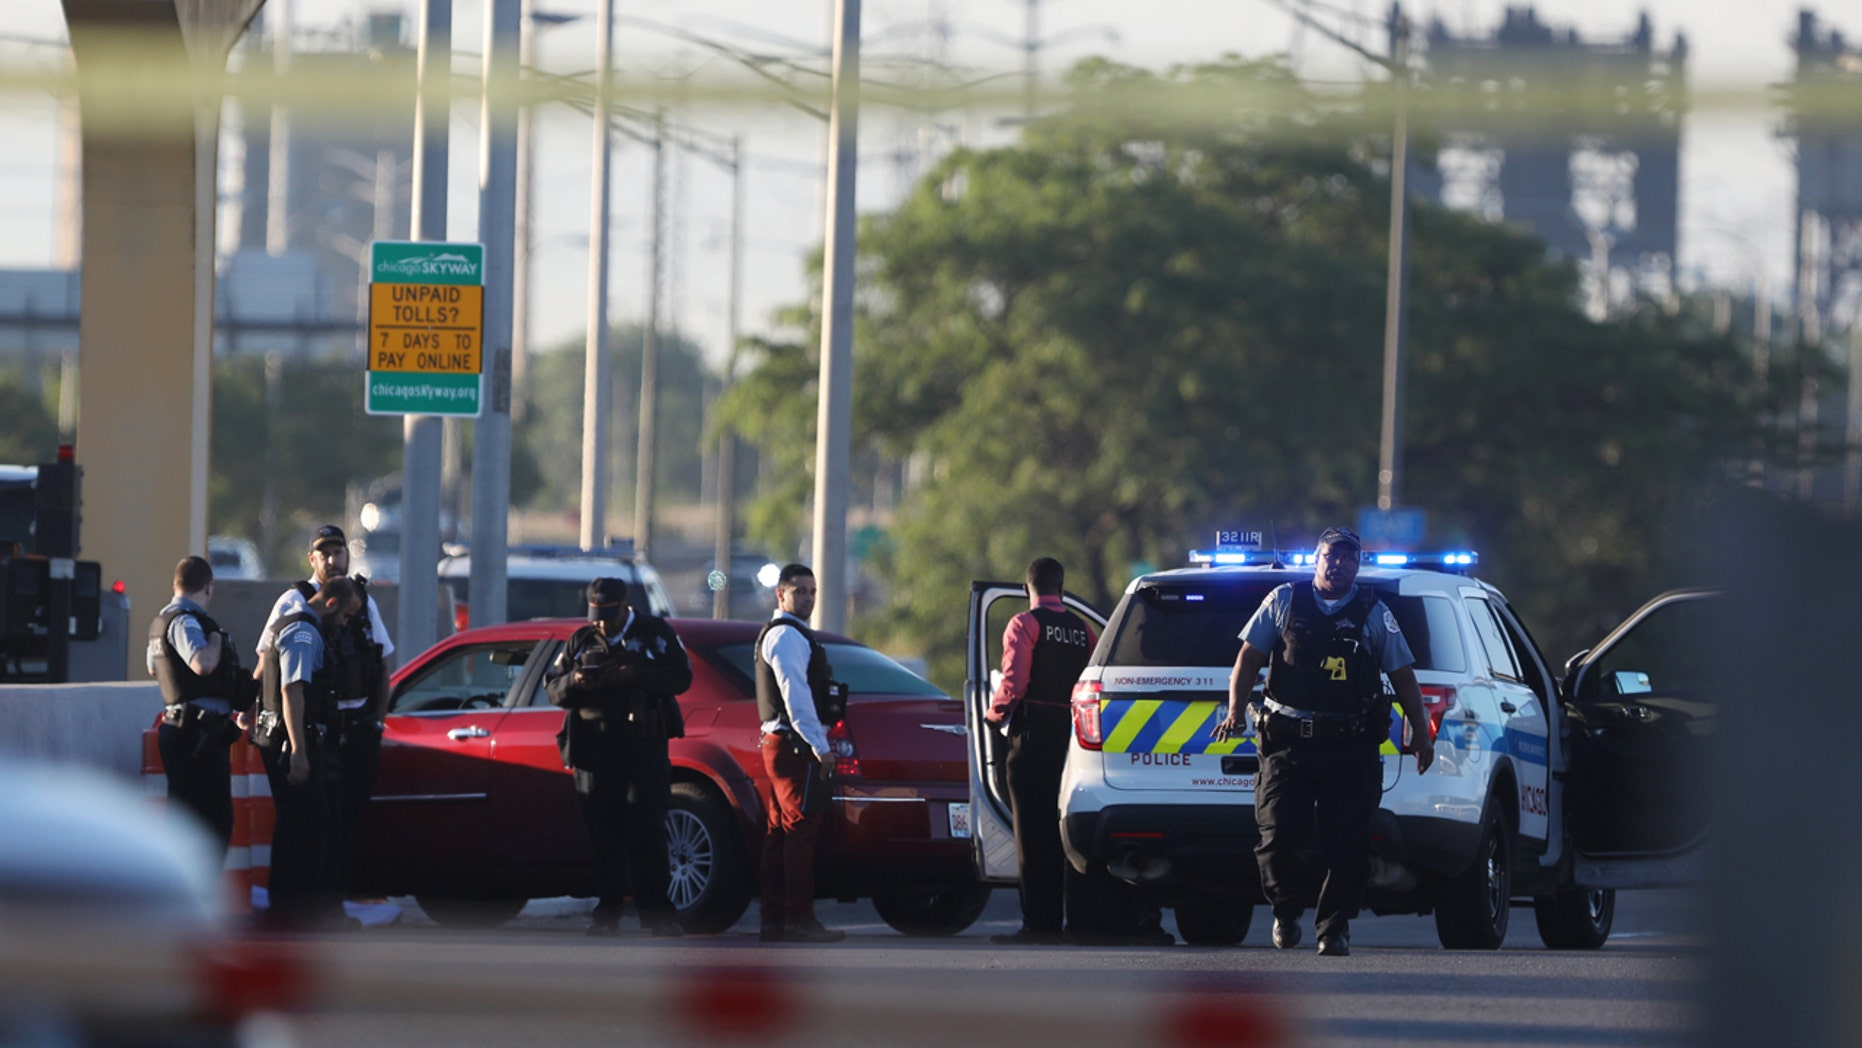 Chicago police work at the scene of a shooting that killed multiple people on the Chicago Skyway early Wednesday, June 21, 2017, in Chicago.